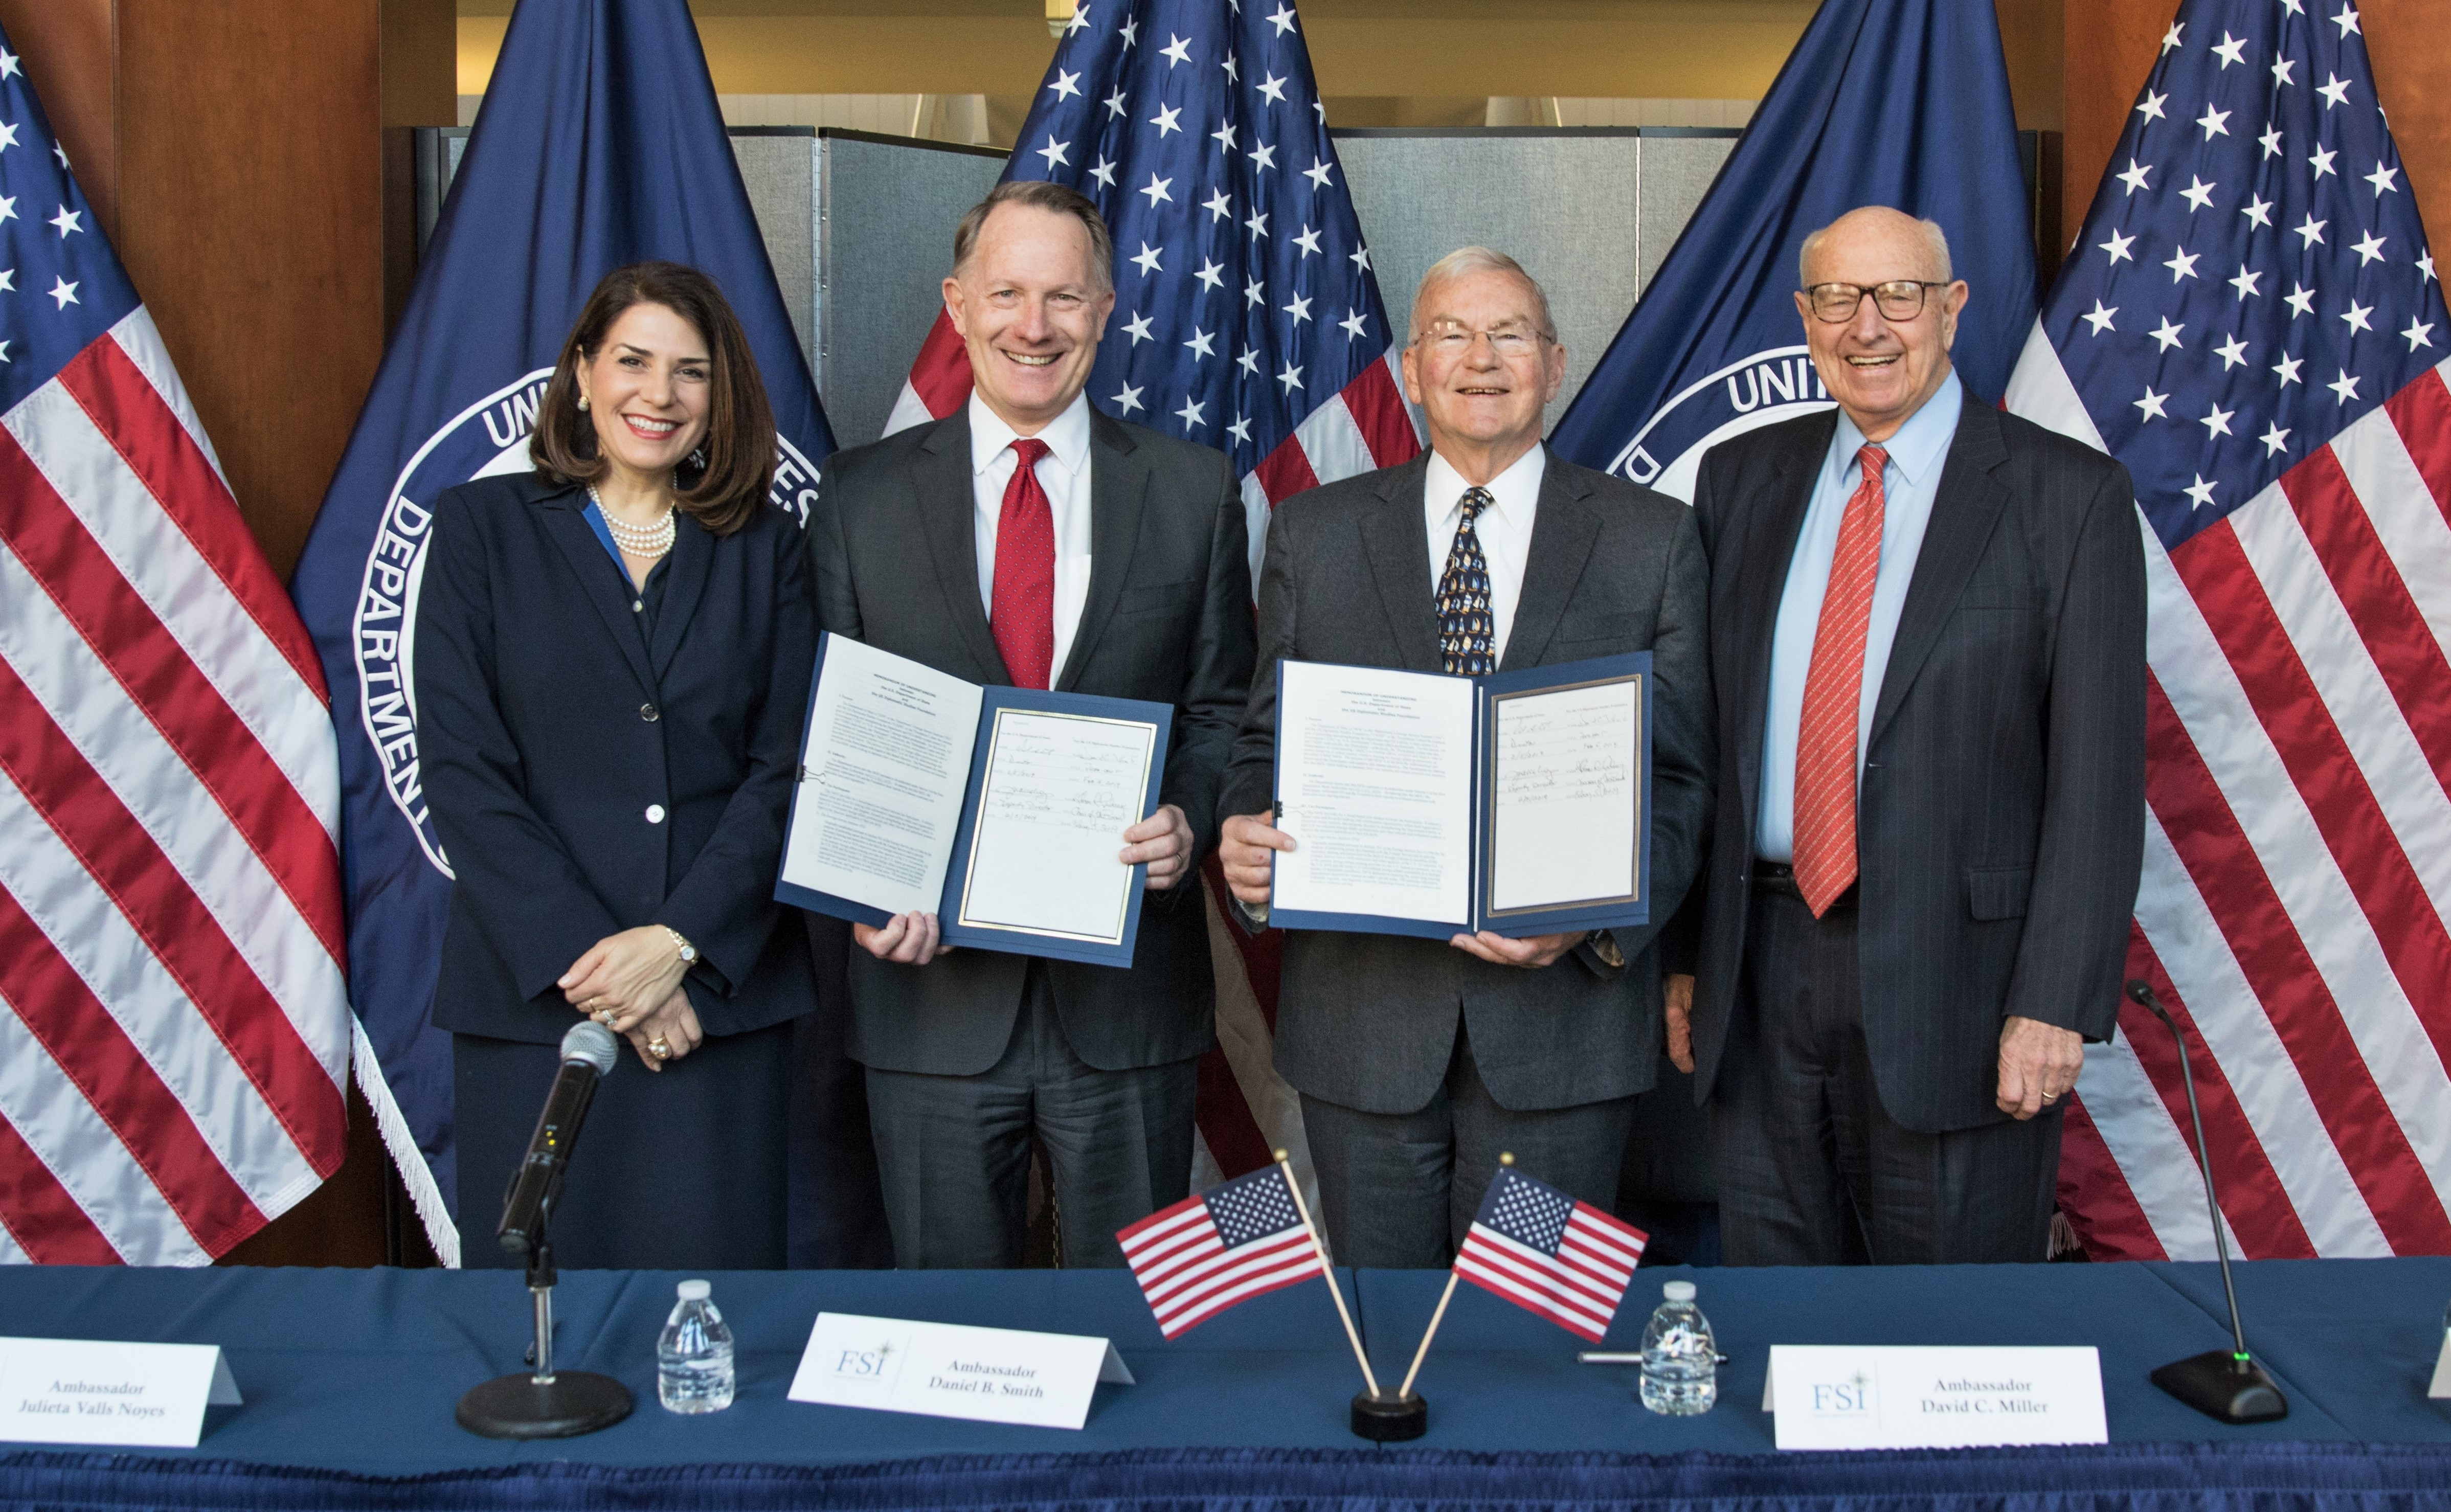 FSI Deputy Director Julieta Valls Noyes, FSI Director Daniel B. Smith, USDSF President David C. Miller, and USDSF Co-Chair Ambassador Thomas R. Pickering at the MOU signing ceremony. Ambassadors Smith and Miller hold the signed MOUs.